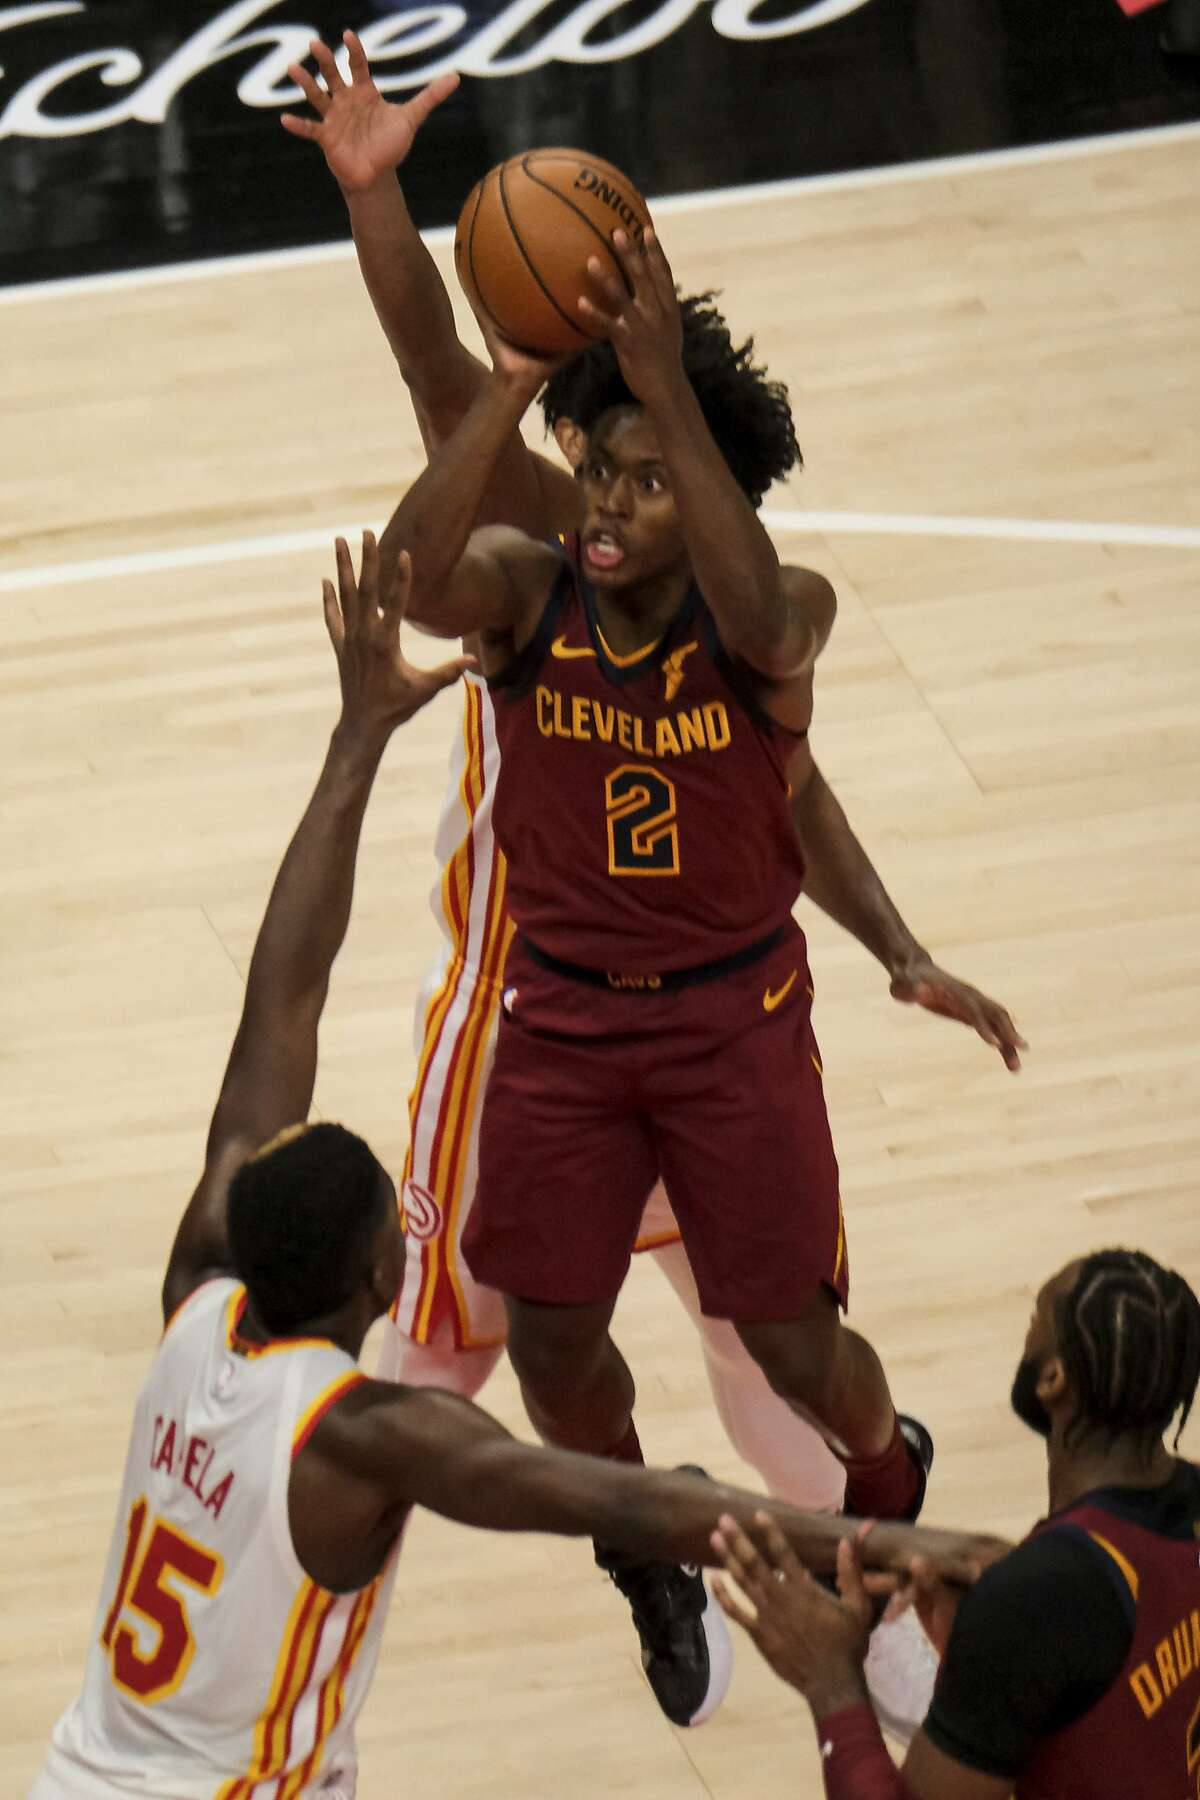 Cleveland guard Collin Sexton (2) scored 27 points, including four free throws in the final minute, to help ice the win.